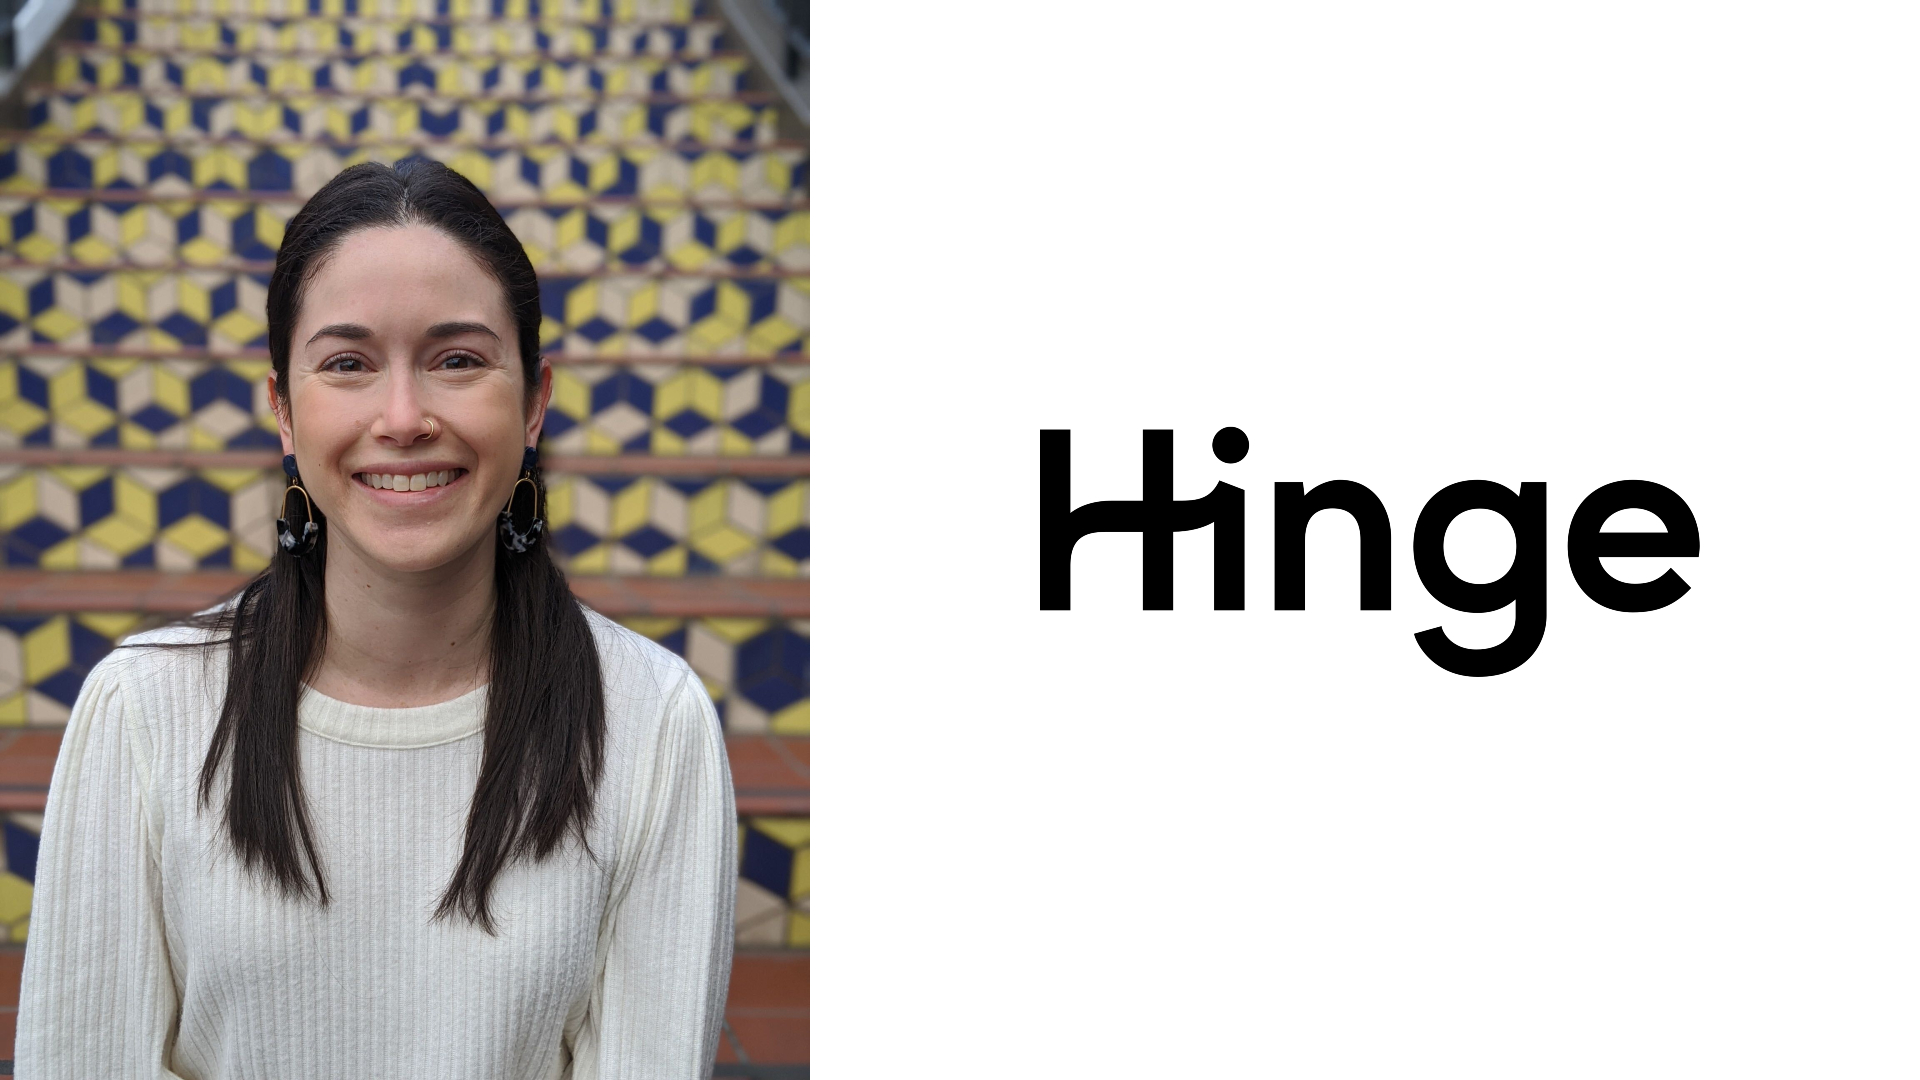 Hinge Announces Michelle Parsons as CPO and Creates New Chief Design Officer Position